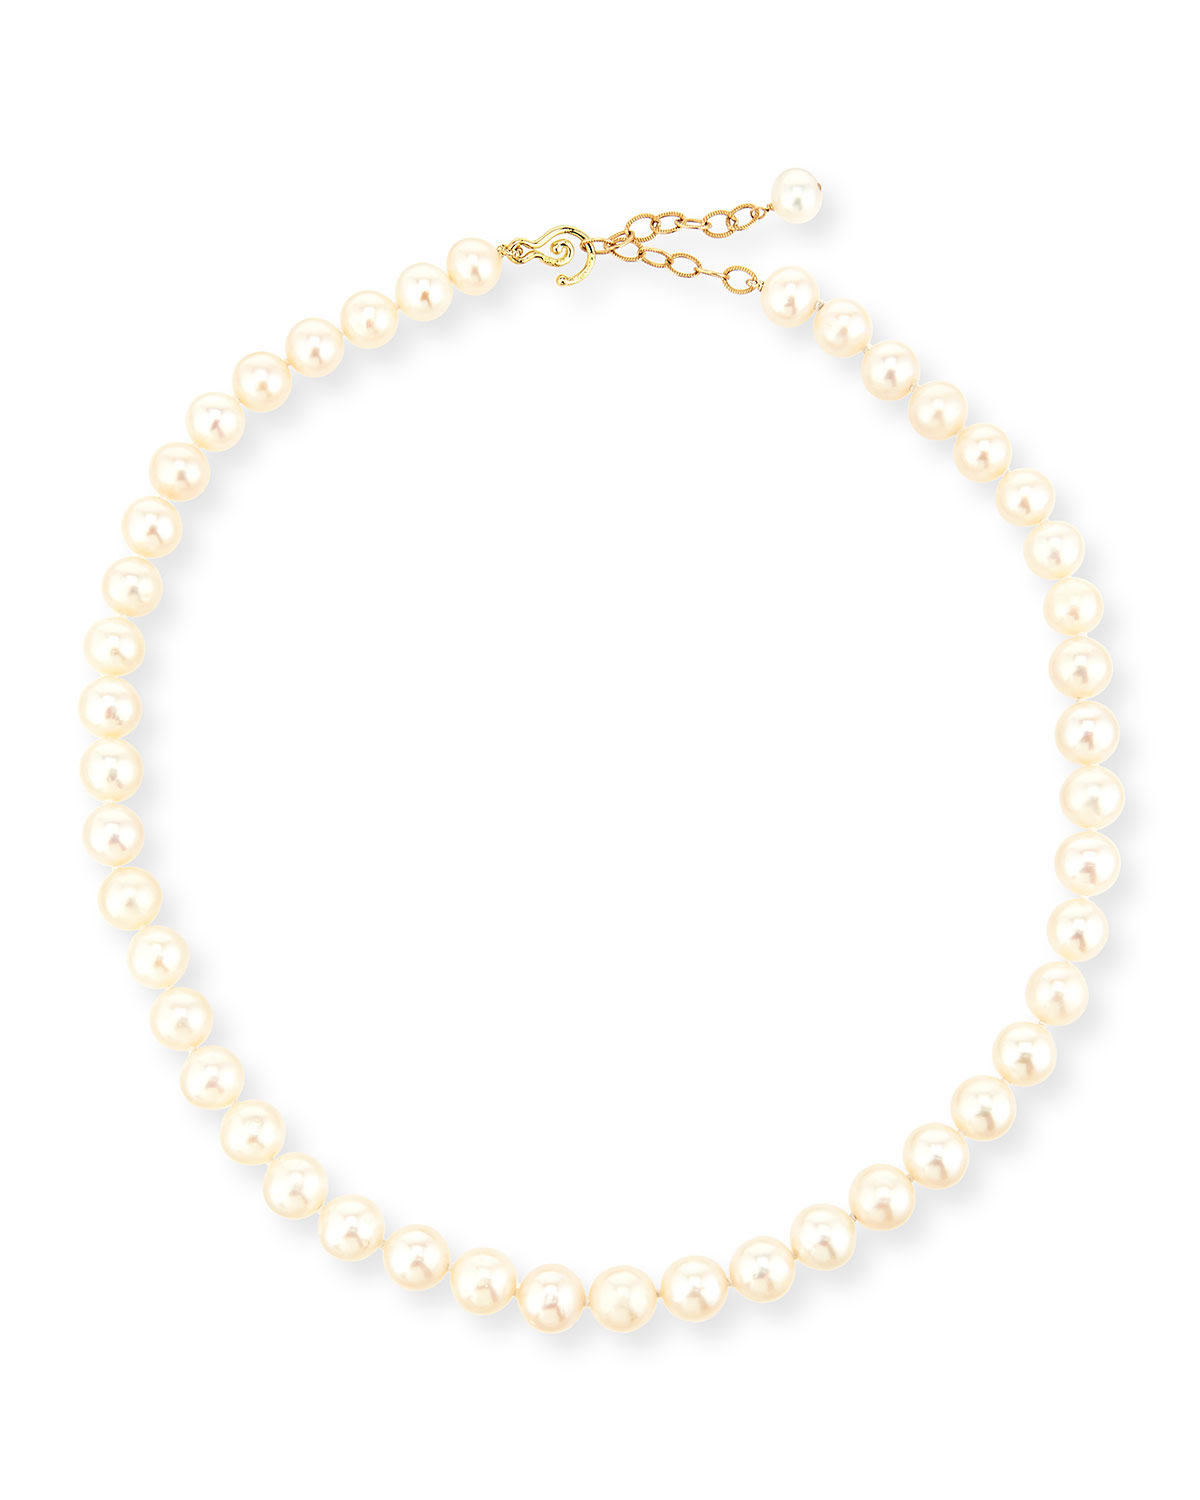 10mm Freshwater Pearl Necklace, 17